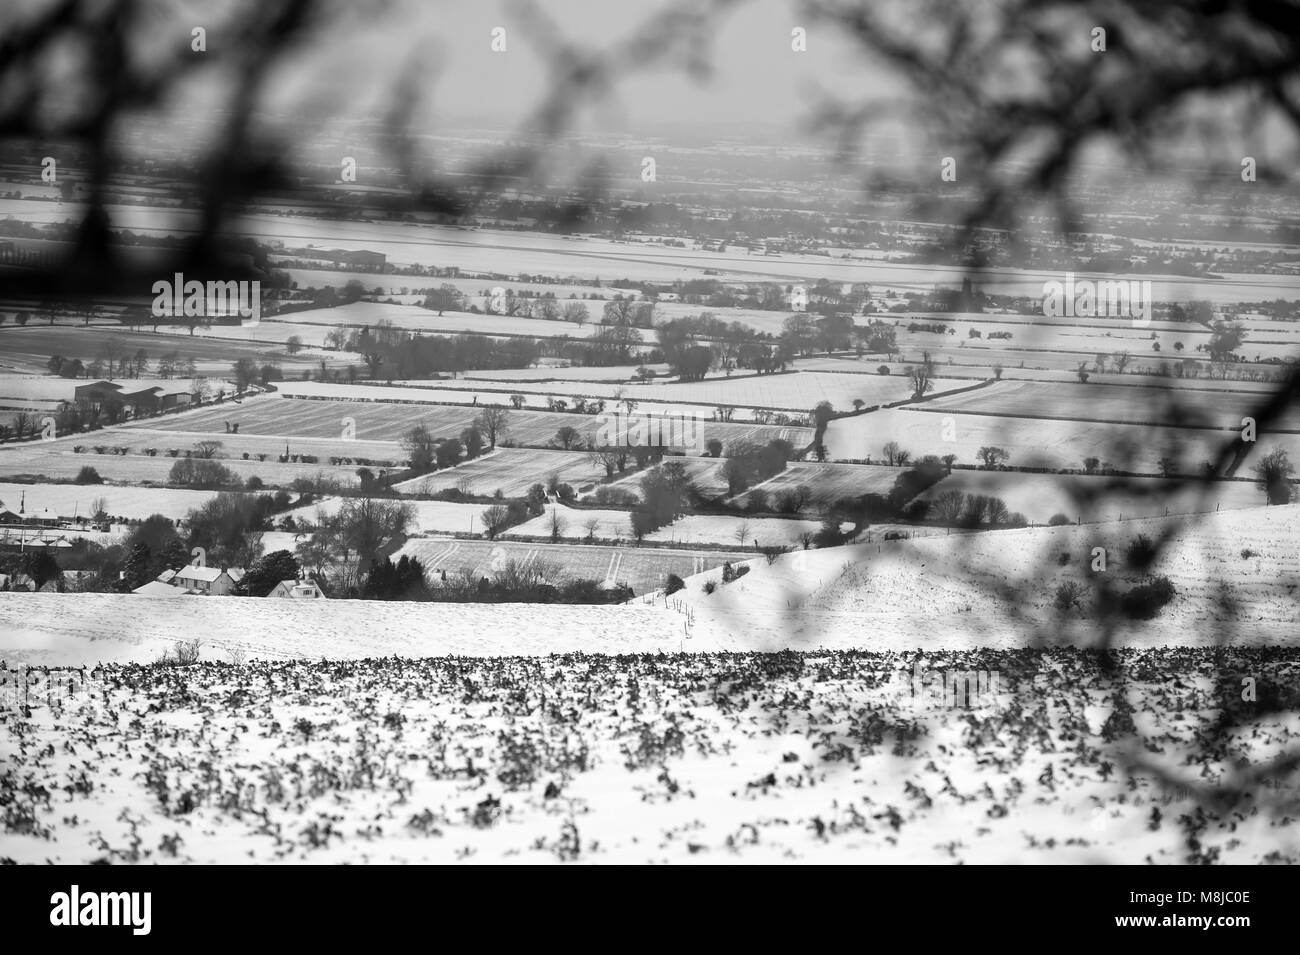 View of the village of Edington which has covered the Wiltshire countryside in Snow. - Stock Image